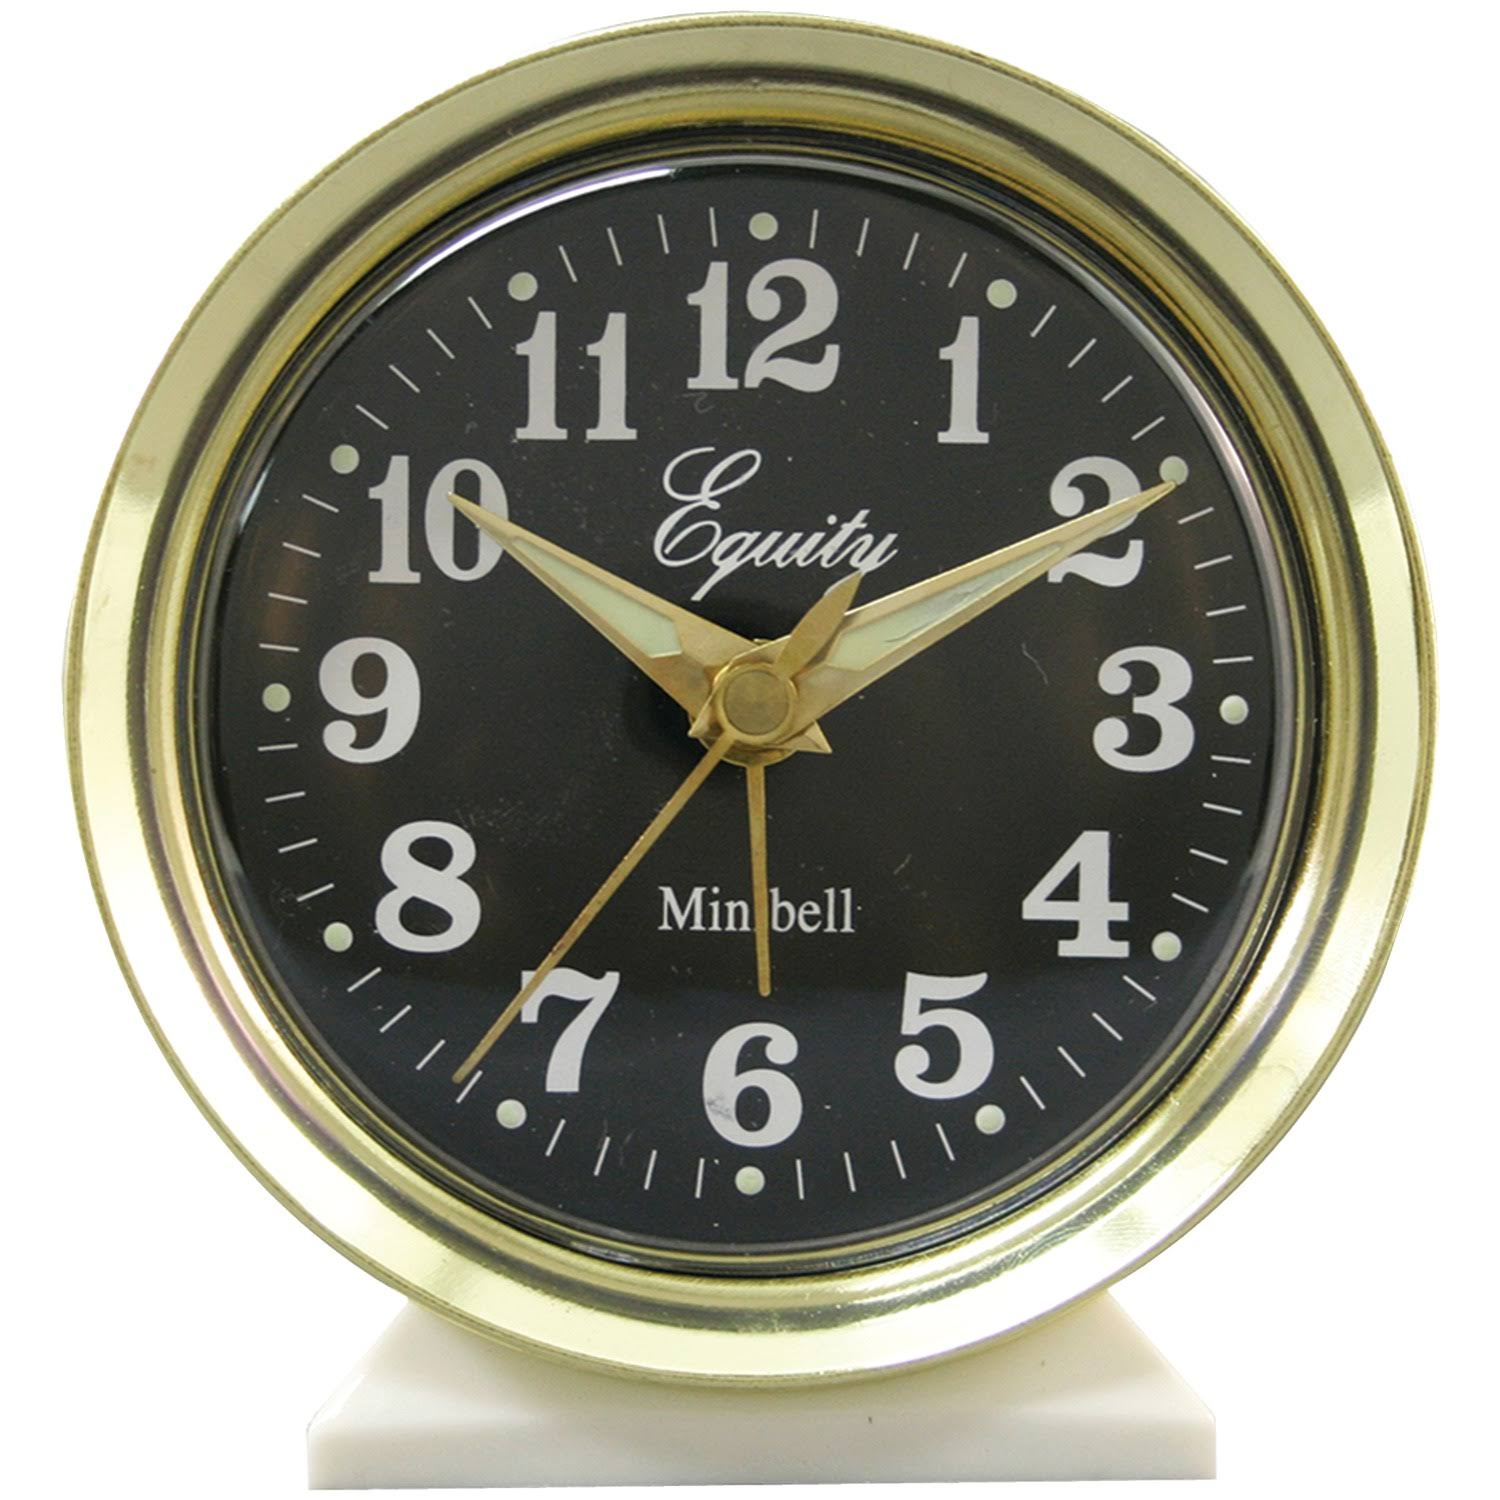 Equity by La Crosse Analog Wind-Up Bell Alarm Clock - Gold